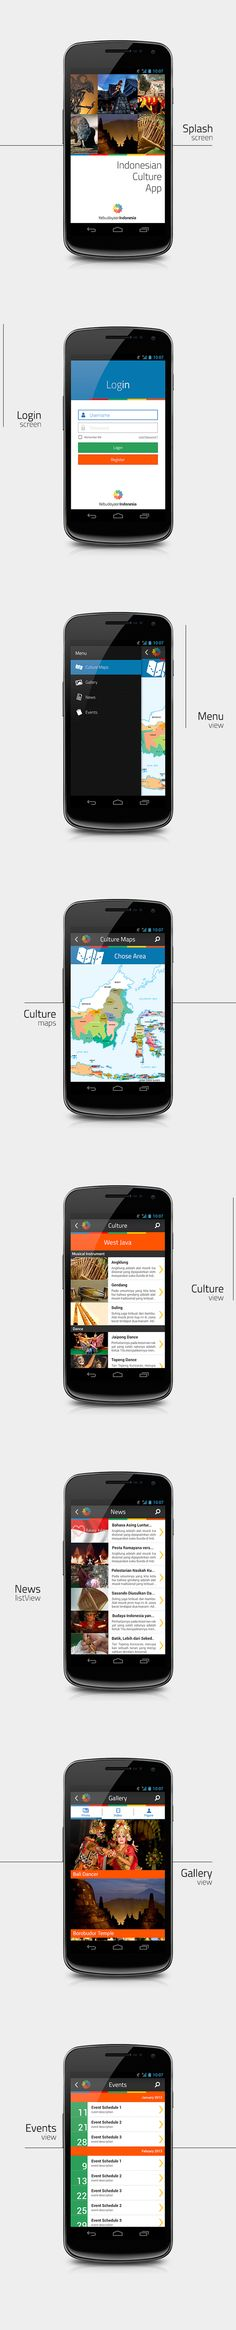 Indonesian Culture App by sandy mondz, via Behance